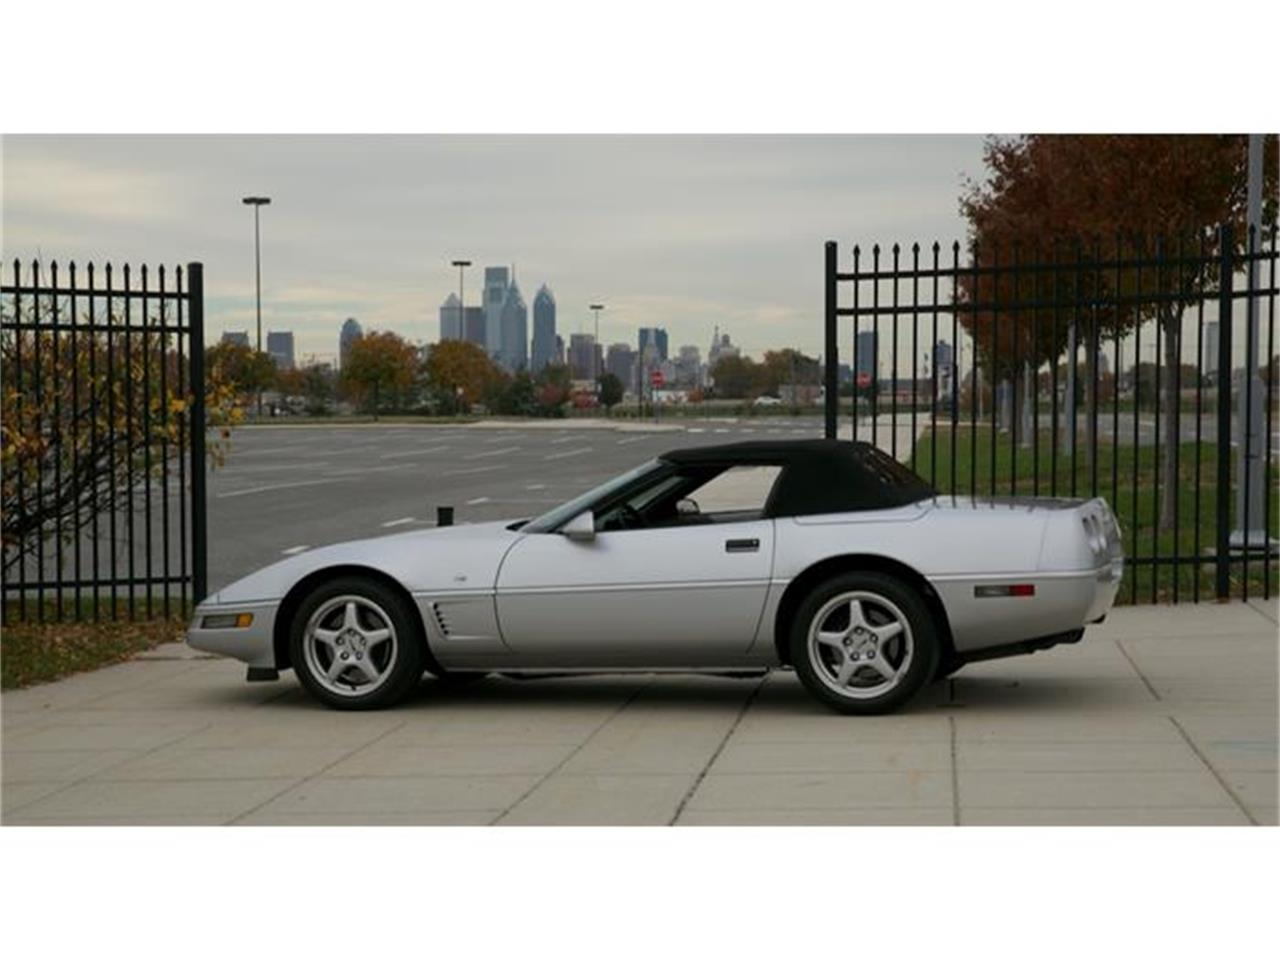 Large Picture of '96 Chevrolet Corvette - $25,900.00 - G17I